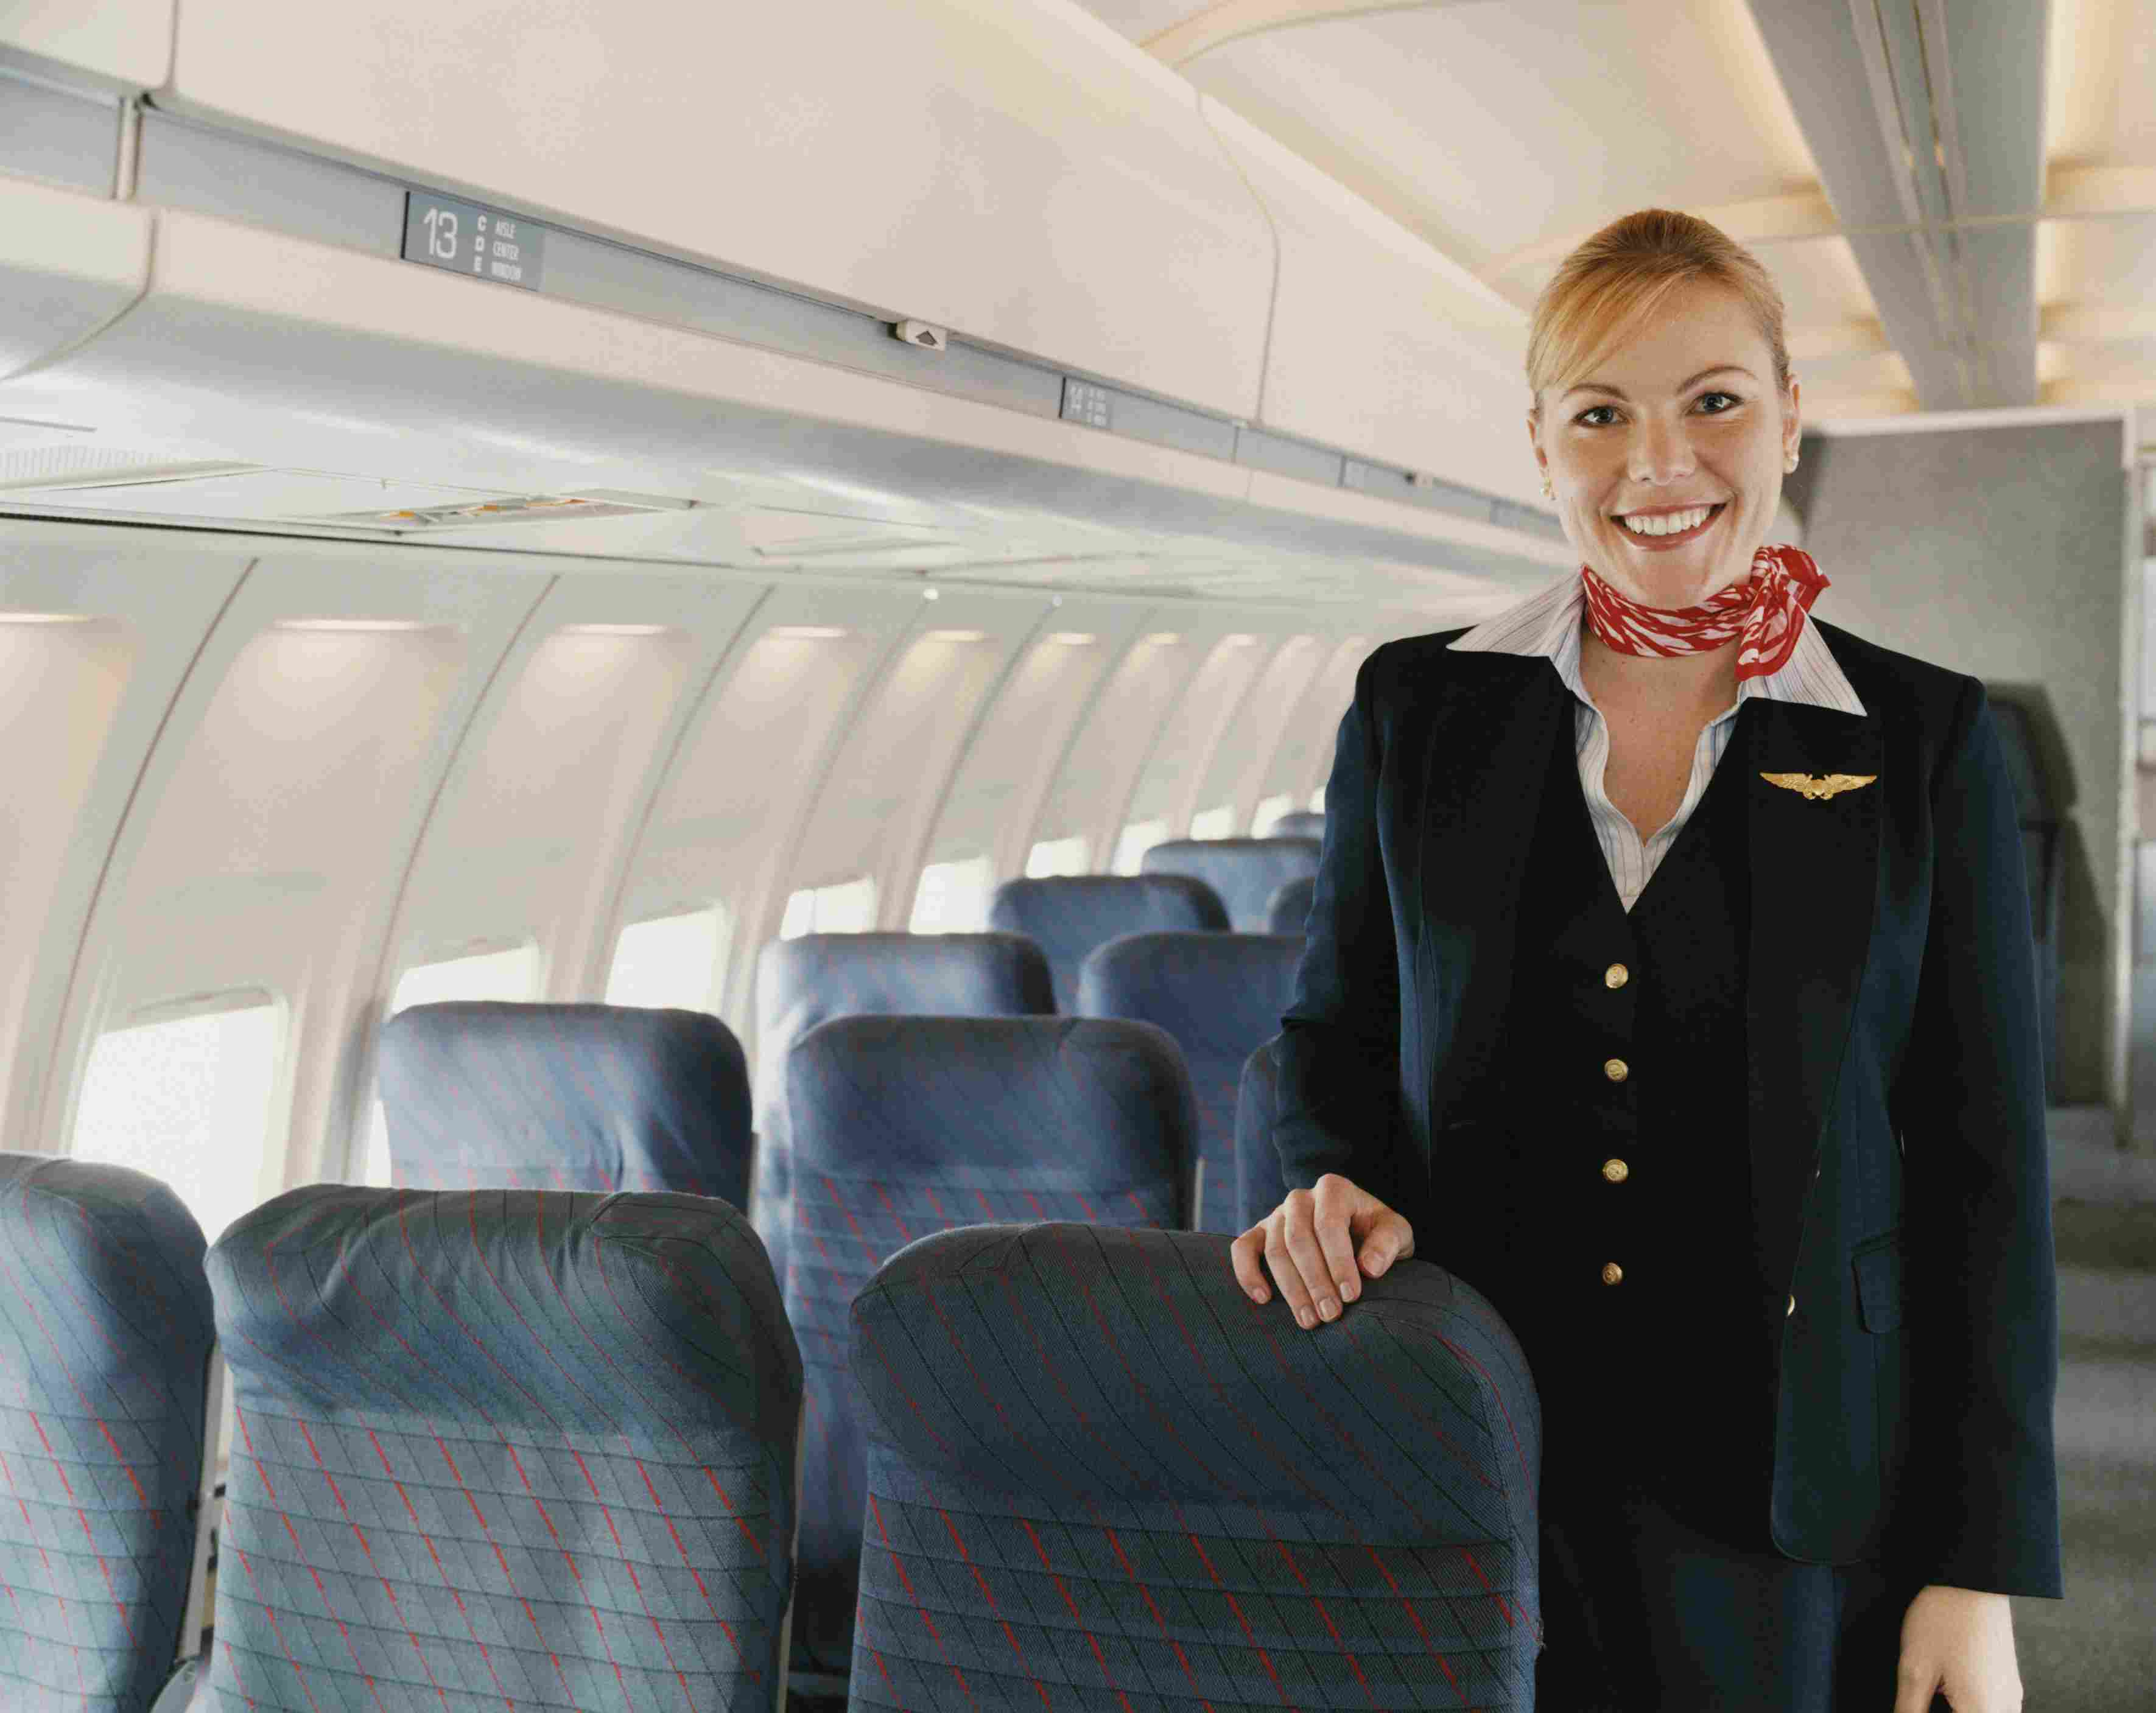 How to Become a Flight Attendant - Starting Your Career